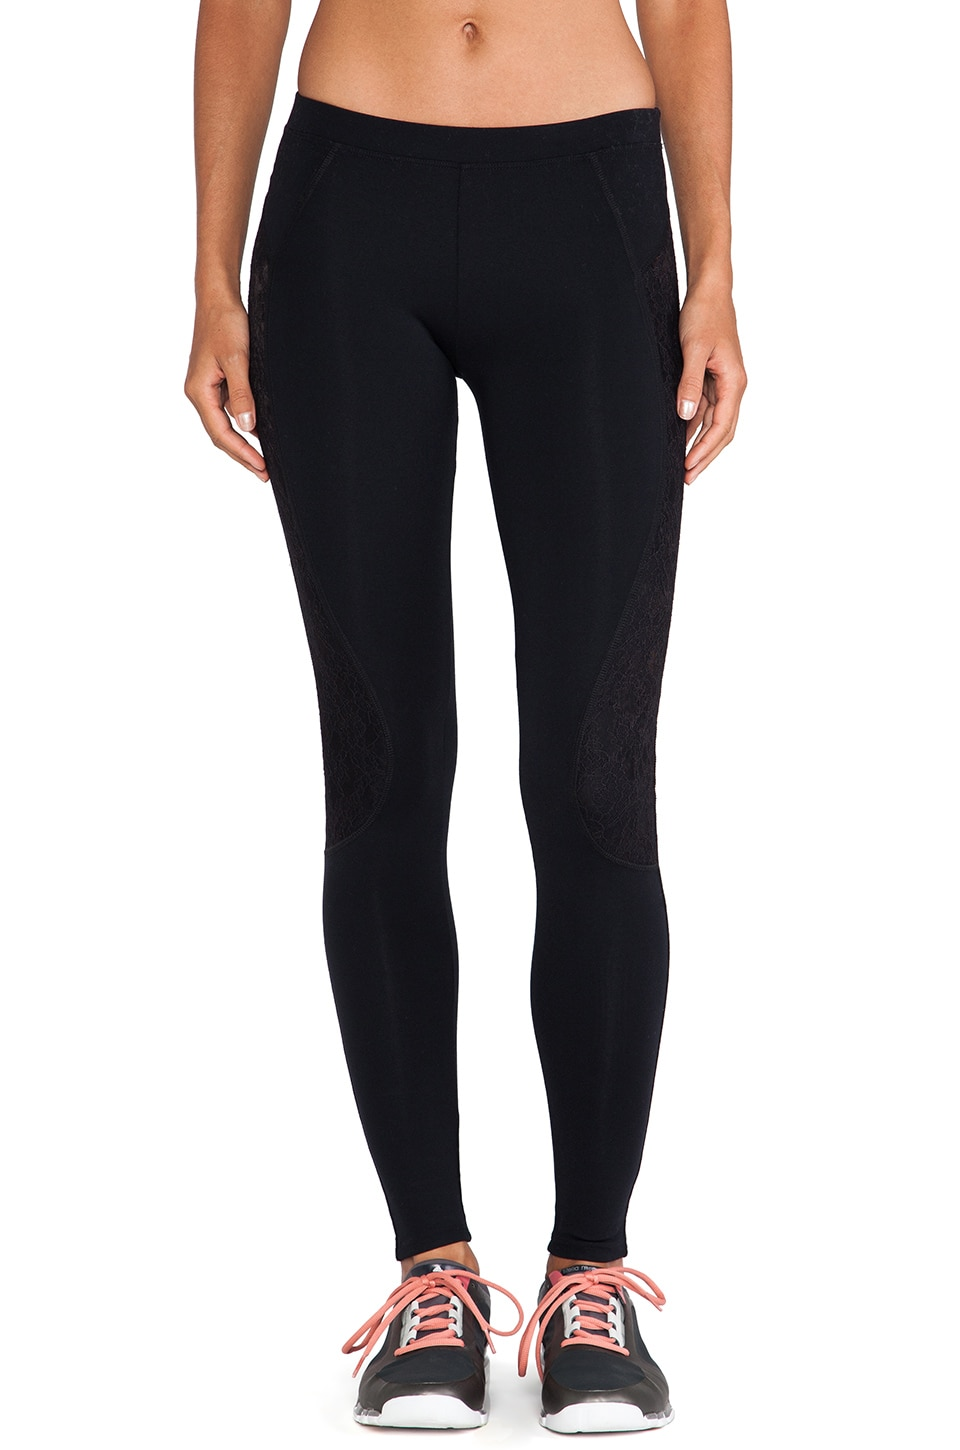 SOLOW So Low Legging with Lace in Black